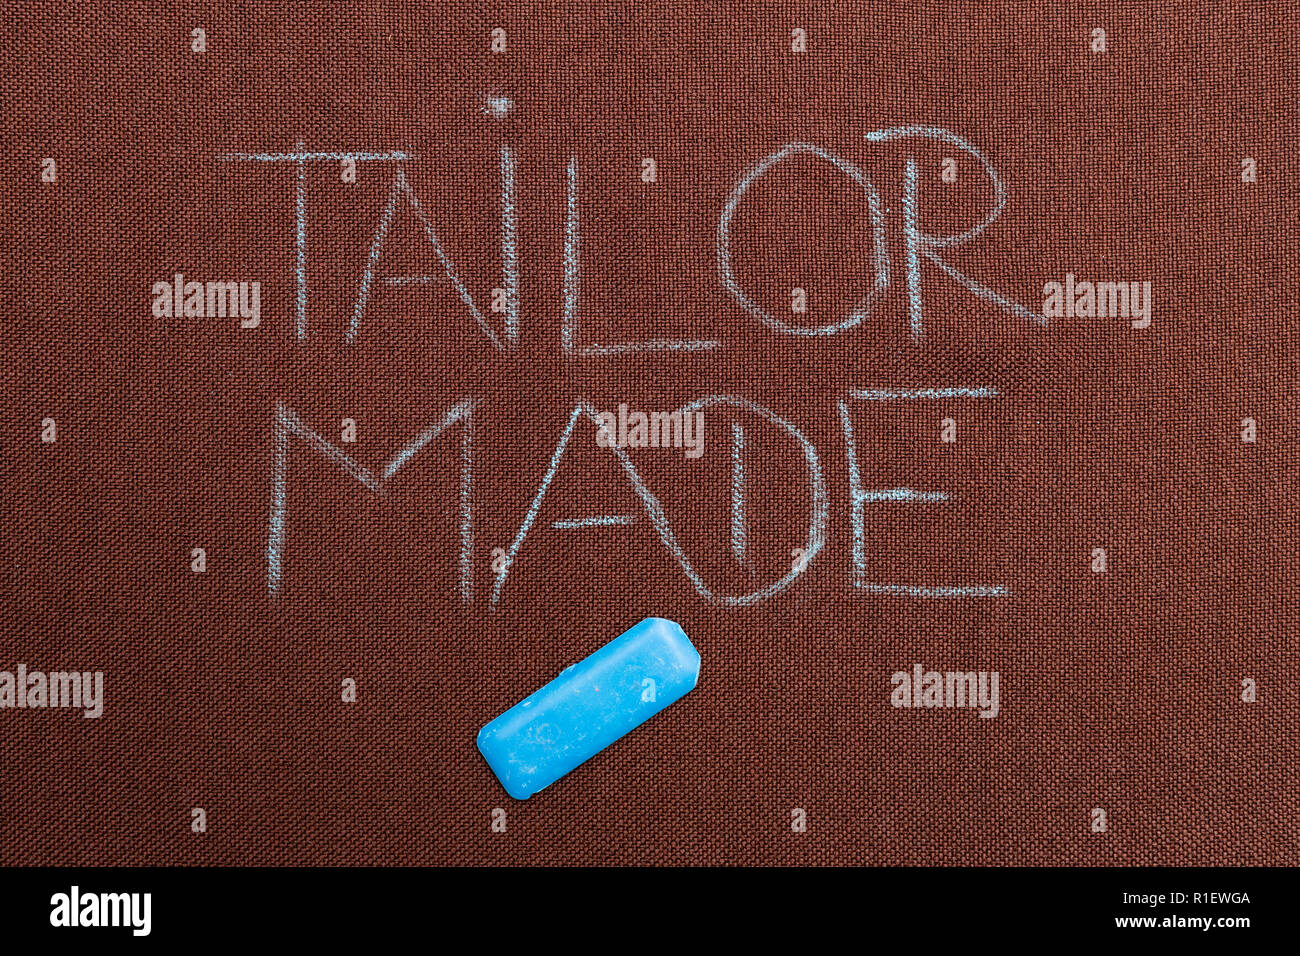 Tailor made text written on brown fabric with blue tailoring chalk underneath Stock Photo